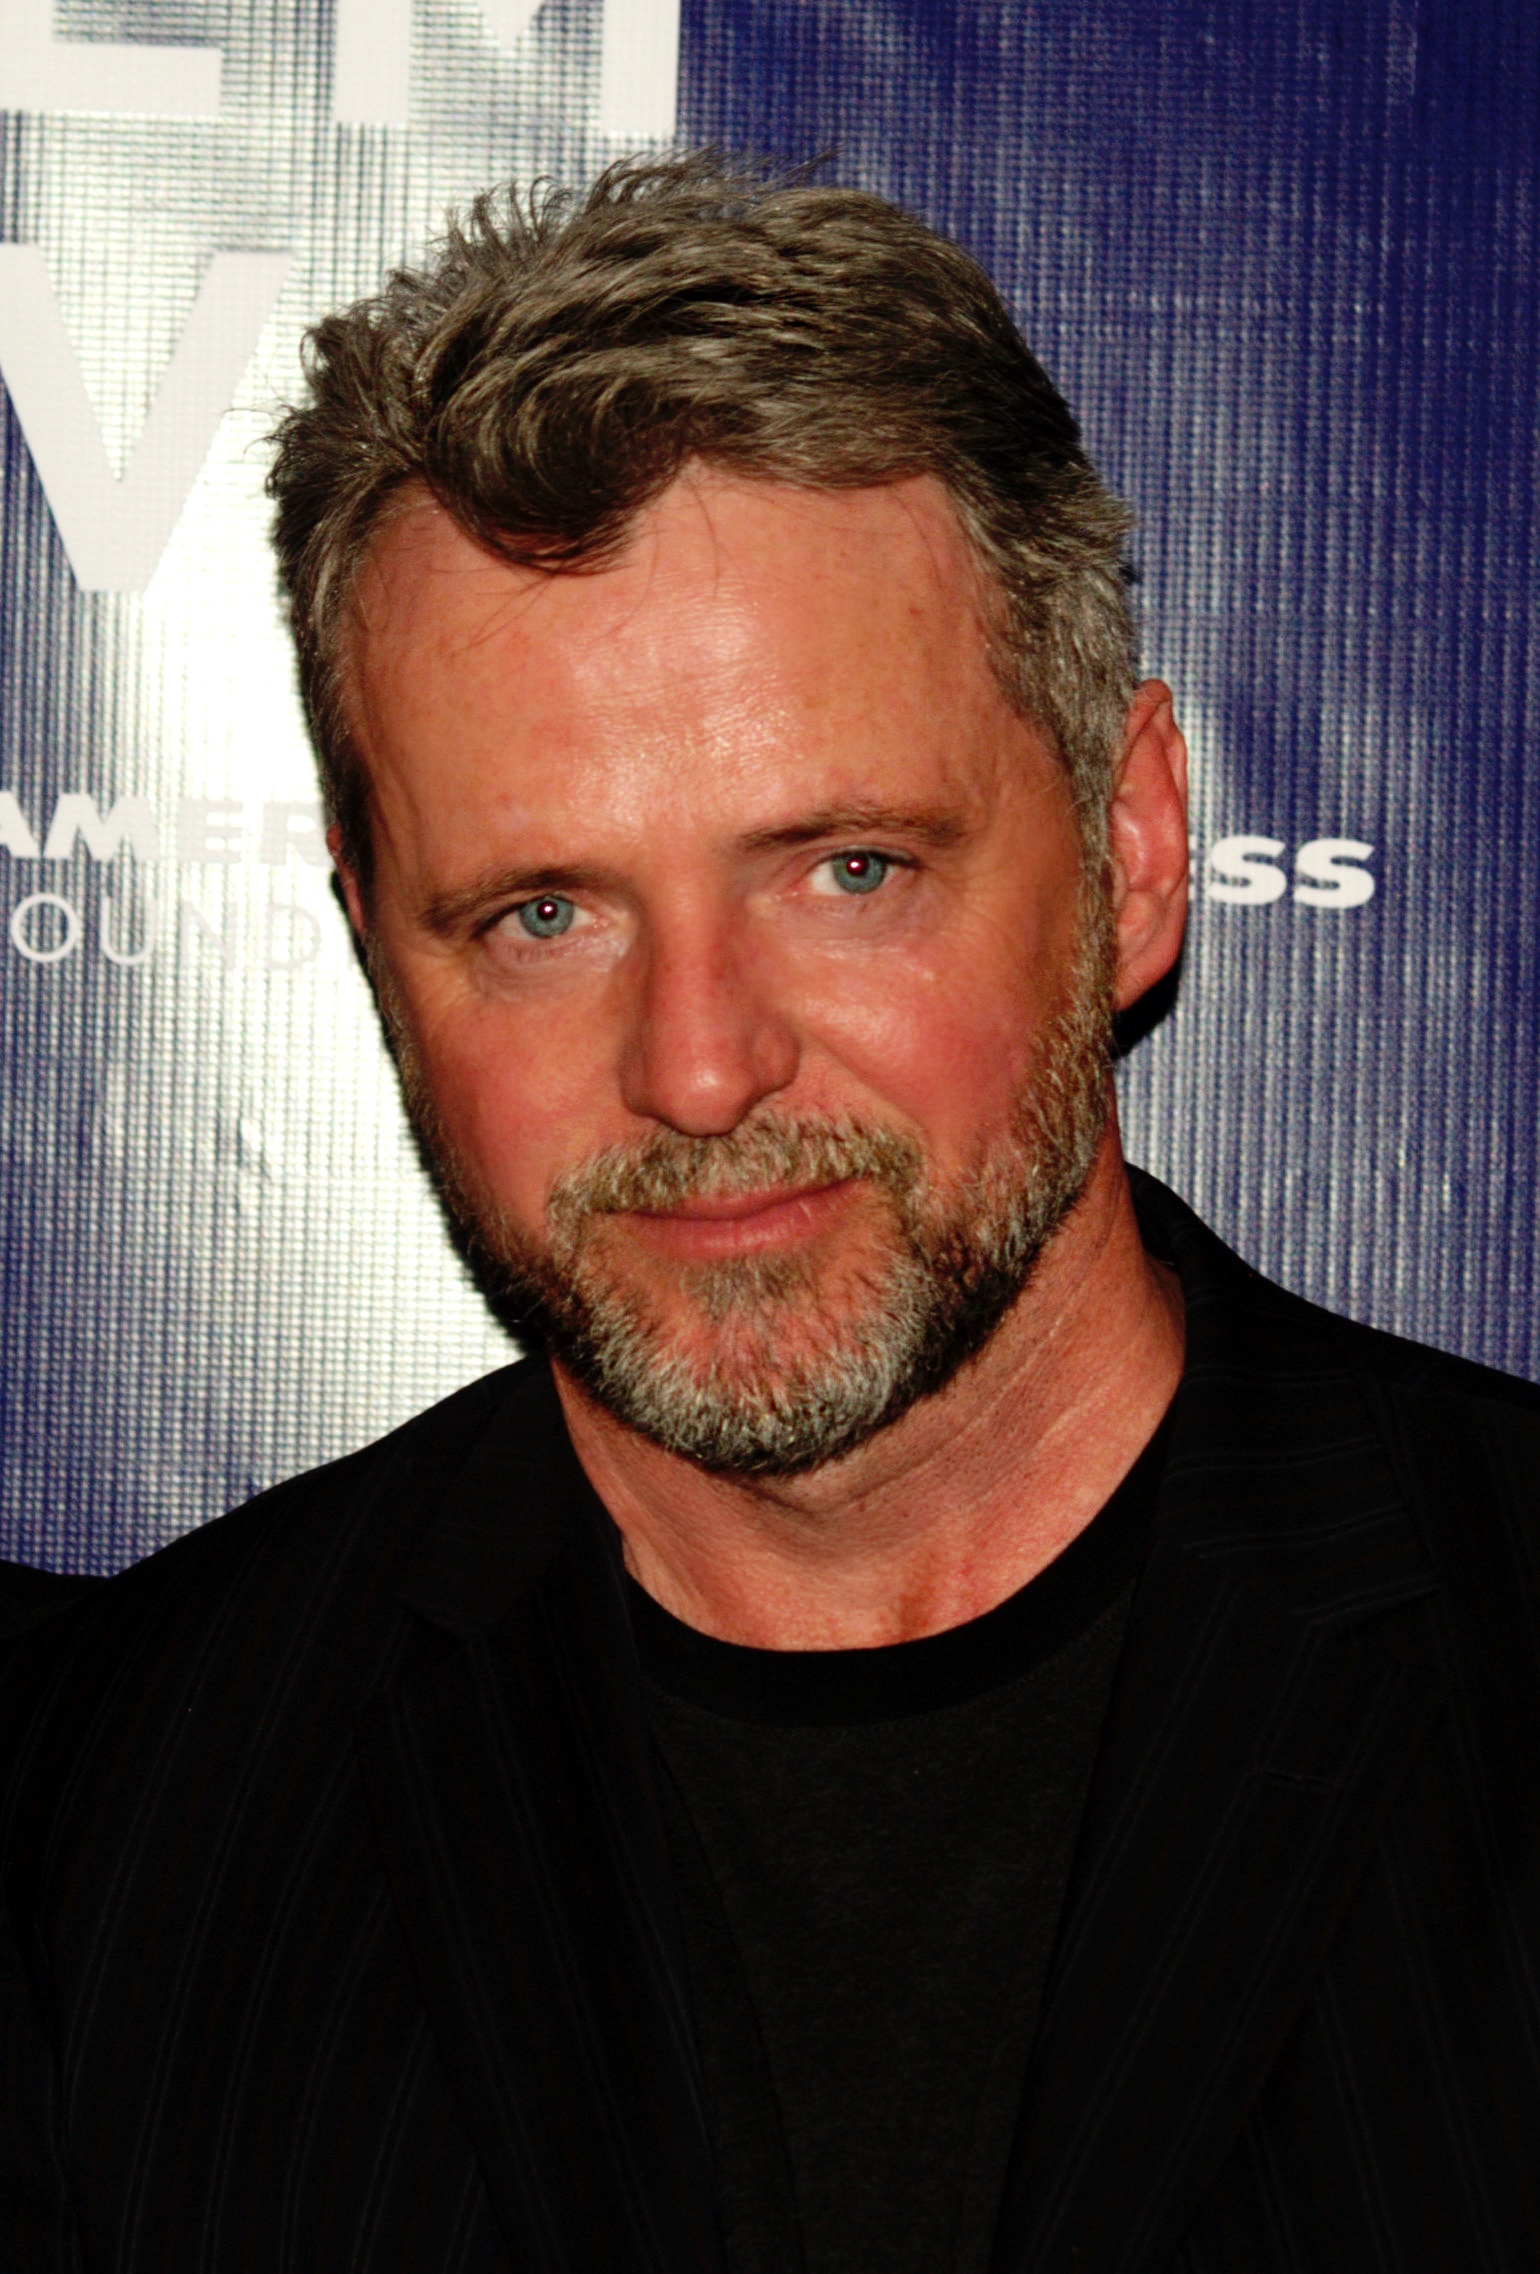 The 59-year old son of father Michael Quinn and mother Teresa Quinn Aidan Quinn in 2018 photo. Aidan Quinn earned a  million dollar salary - leaving the net worth at 9 million in 2018